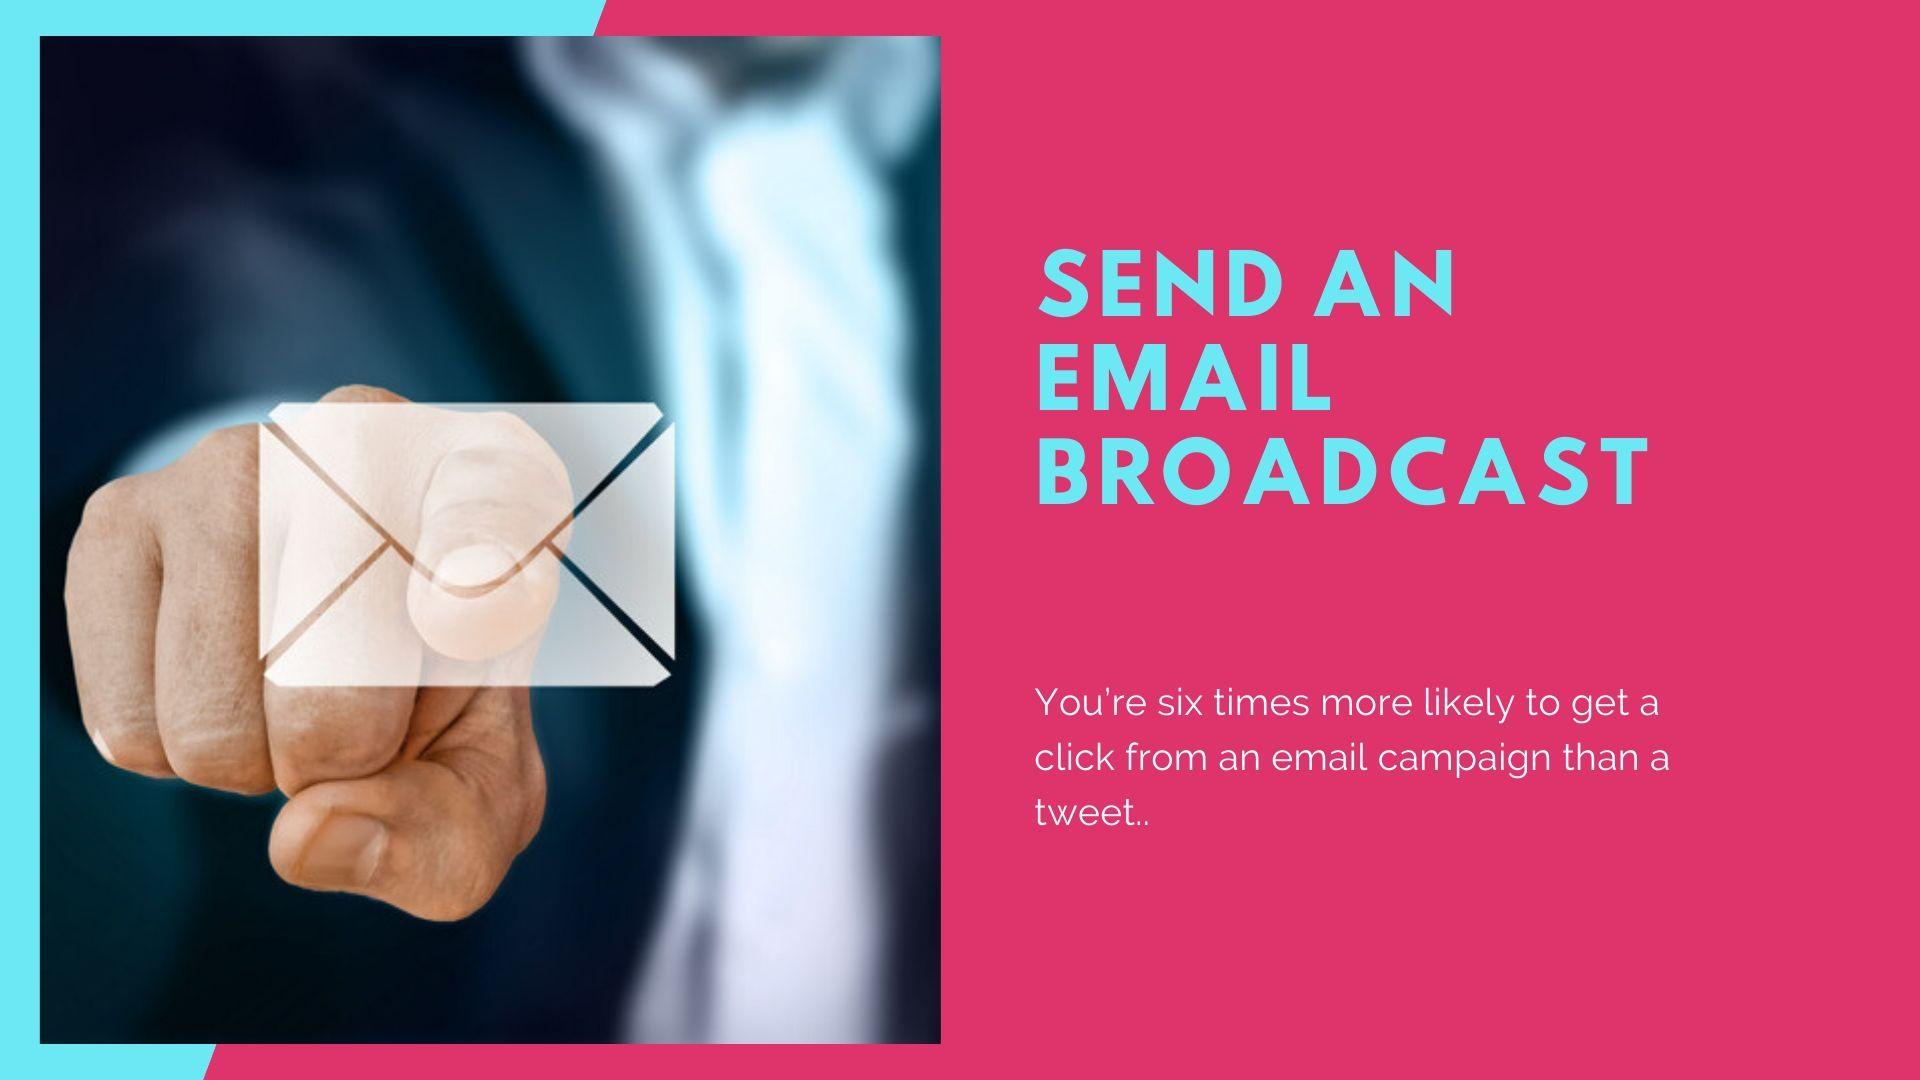 Content - Send an email broadcast